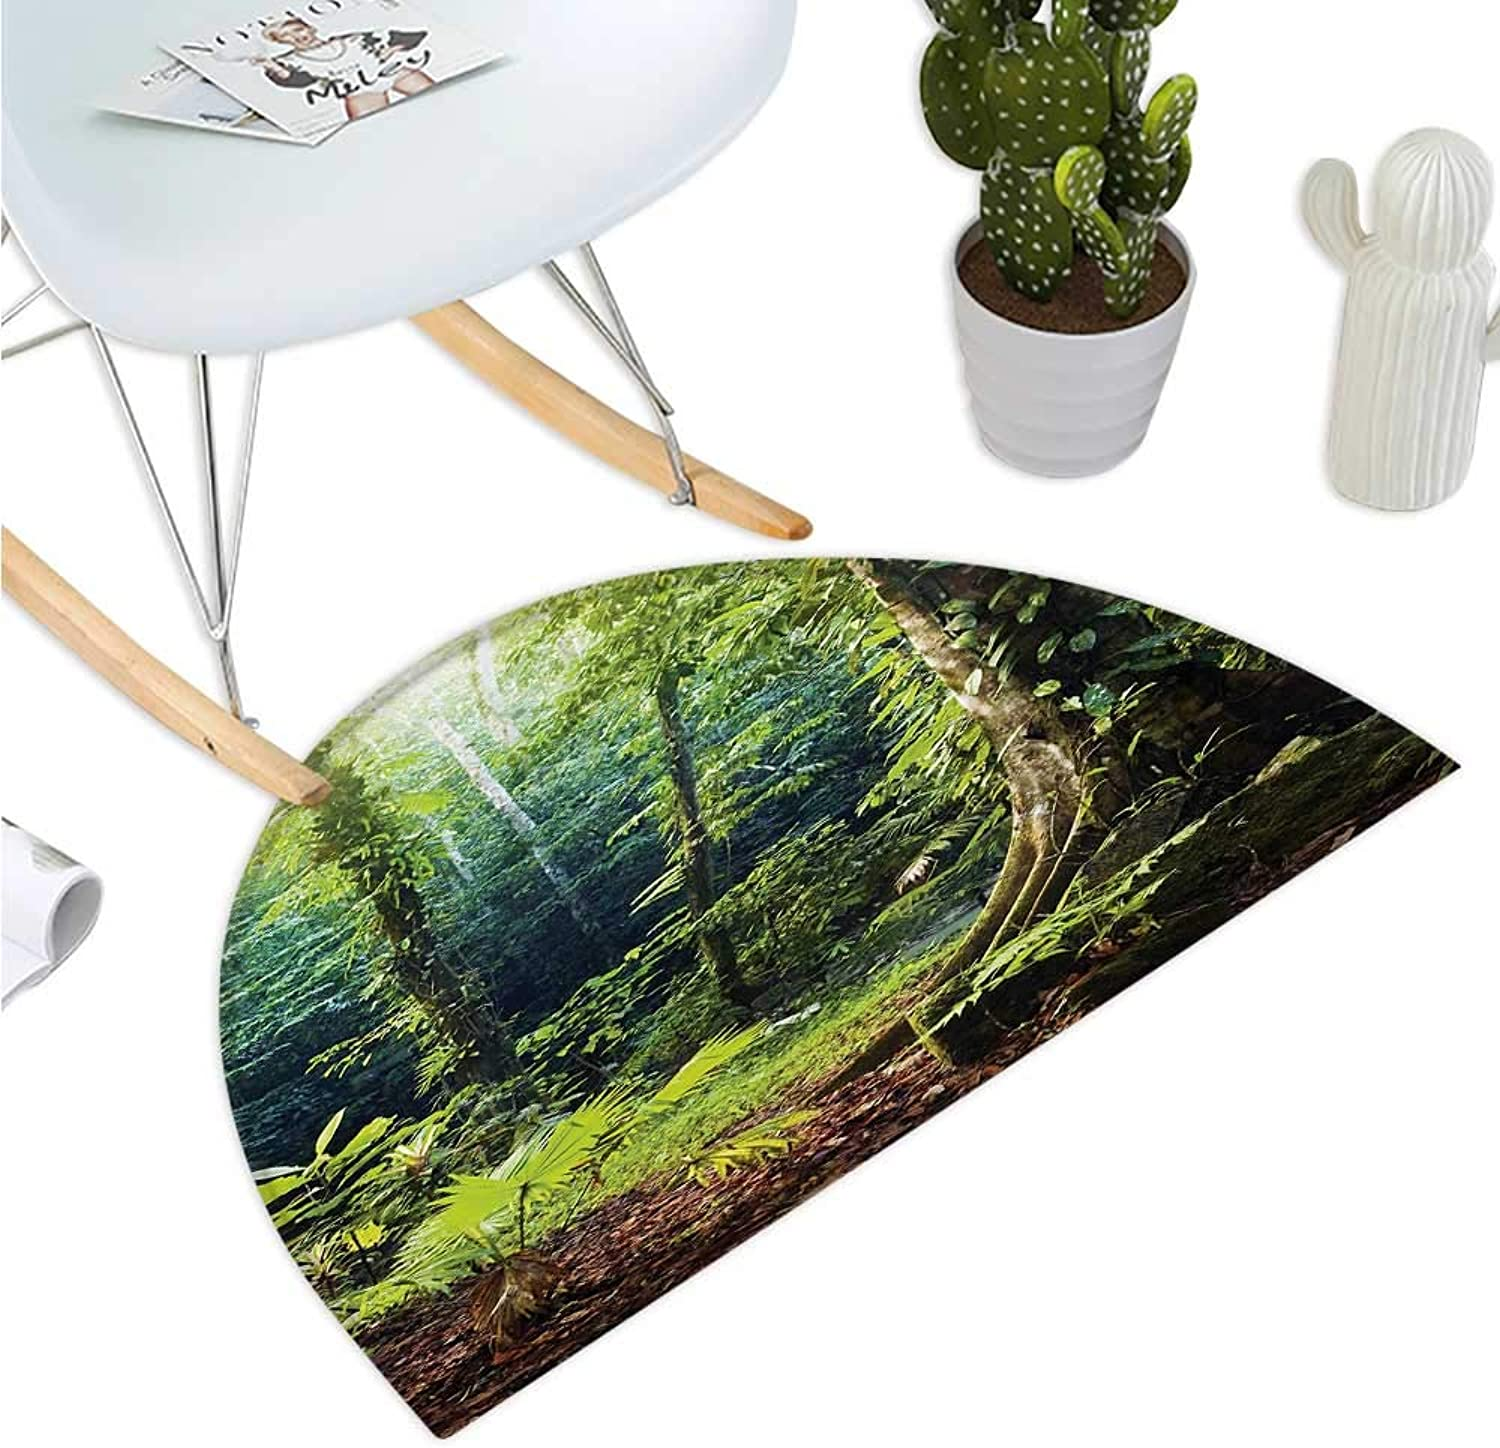 Rainforest Half Round Door mats Morning Sunbeam Through Wild Forest Ivy on Trees Tranquility in Nature Eco Bathroom Mat H 43.3  xD 64.9  Green Brown